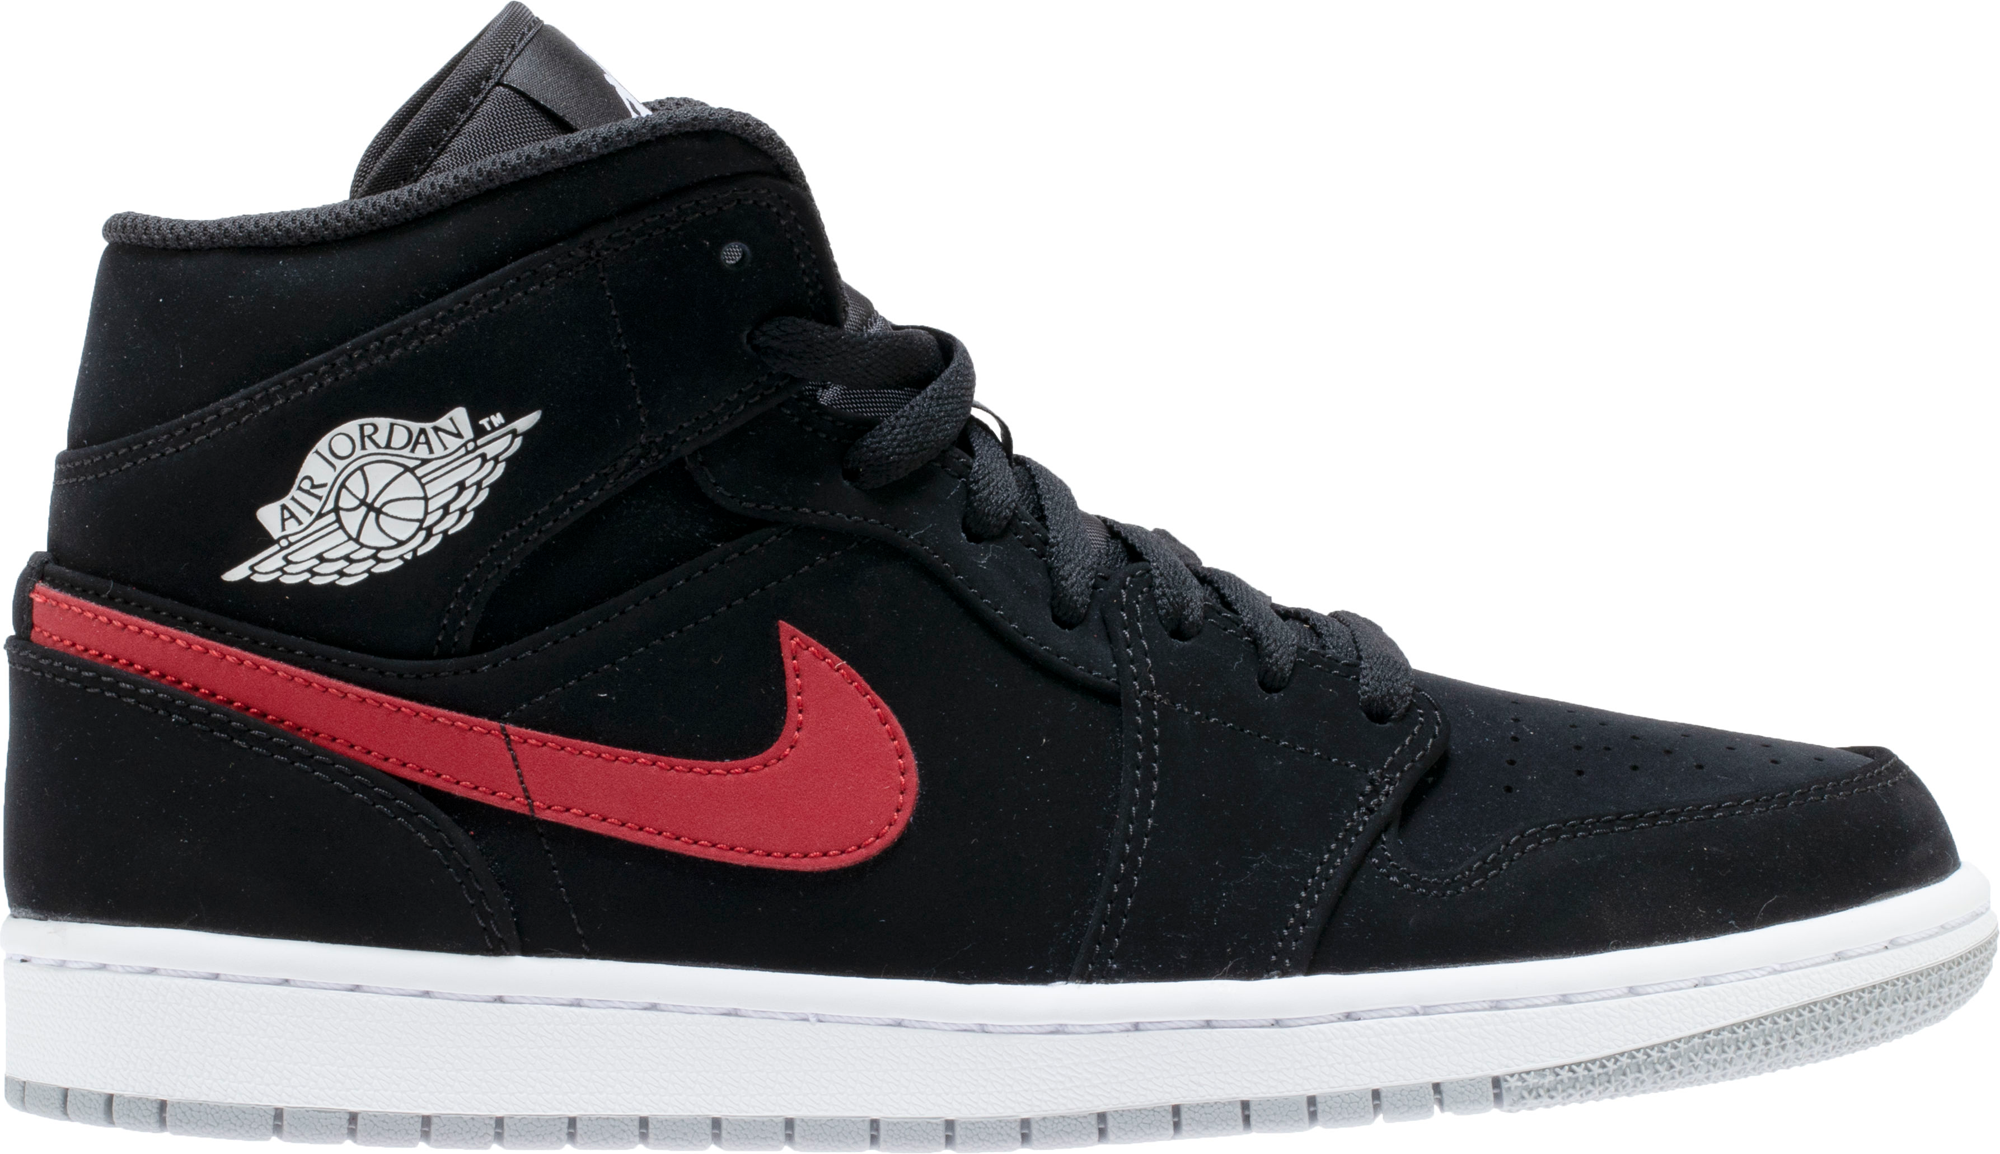 Jordan 1 Mid Multi-Color Swoosh Black